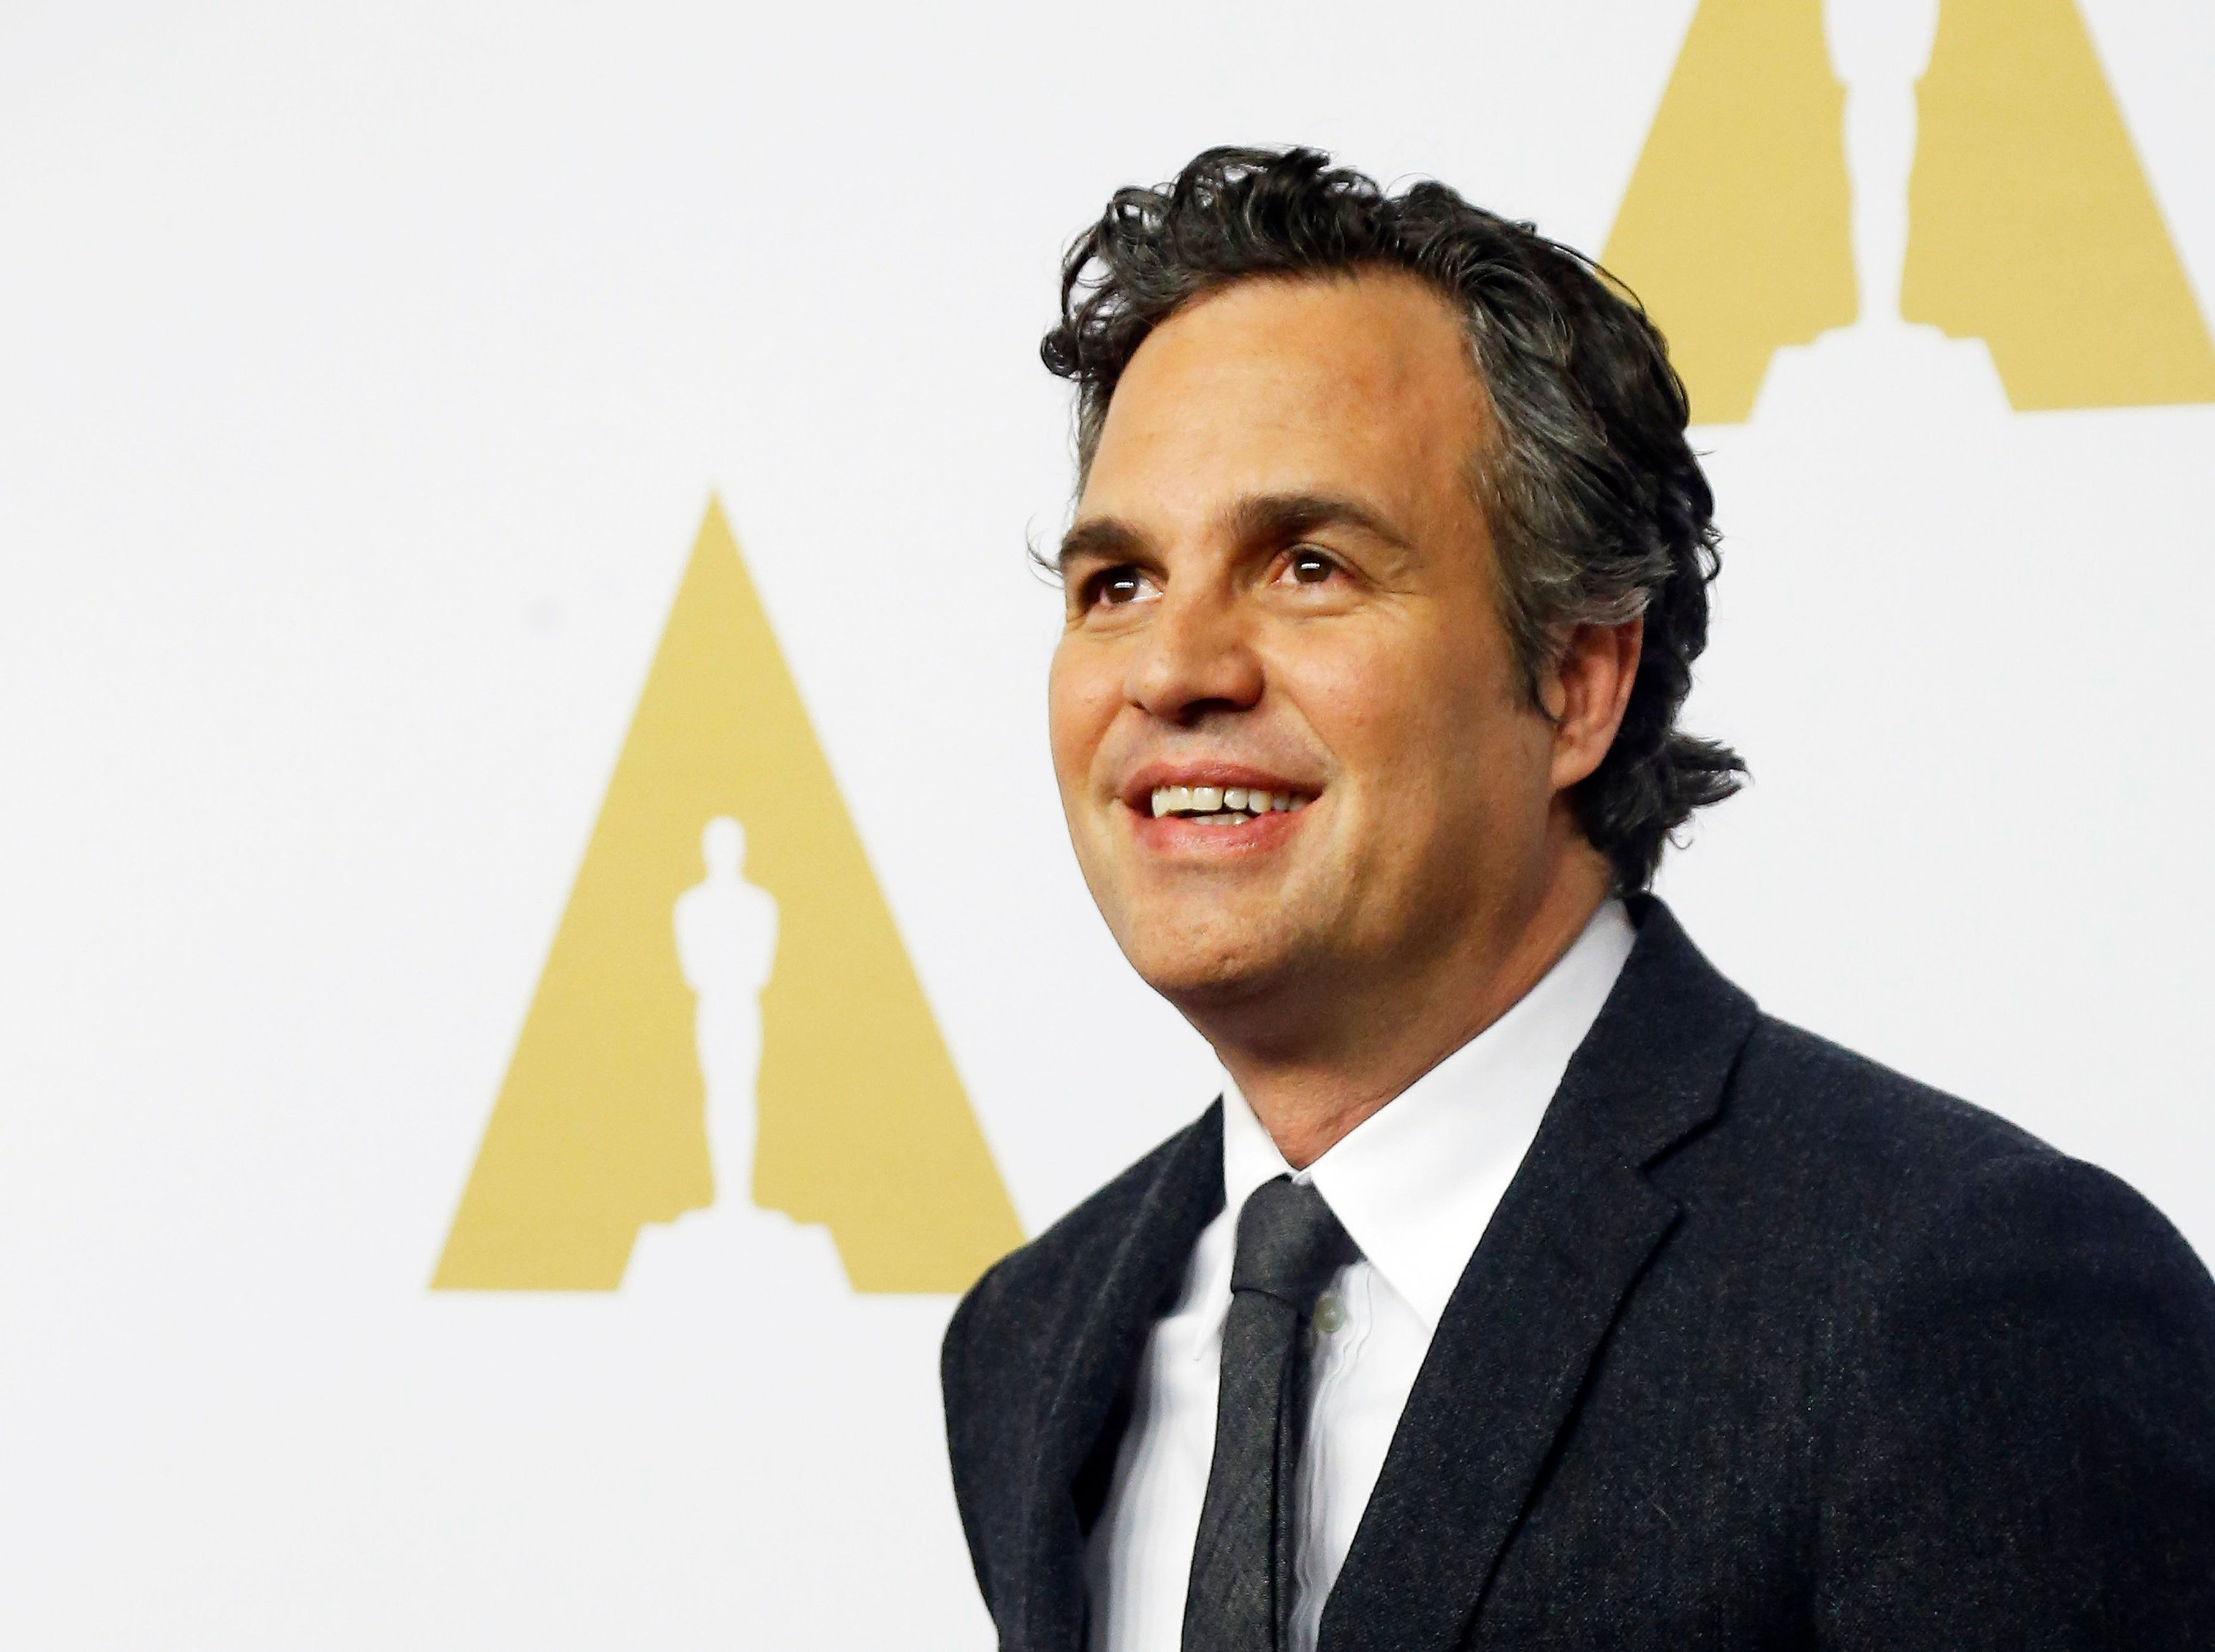 Actor Mark Ruffalo arrives at the 88th Academy Awards nominees luncheon in Beverly Hills, California February 8, 2016.  REUTERS/Mario Anzuoni